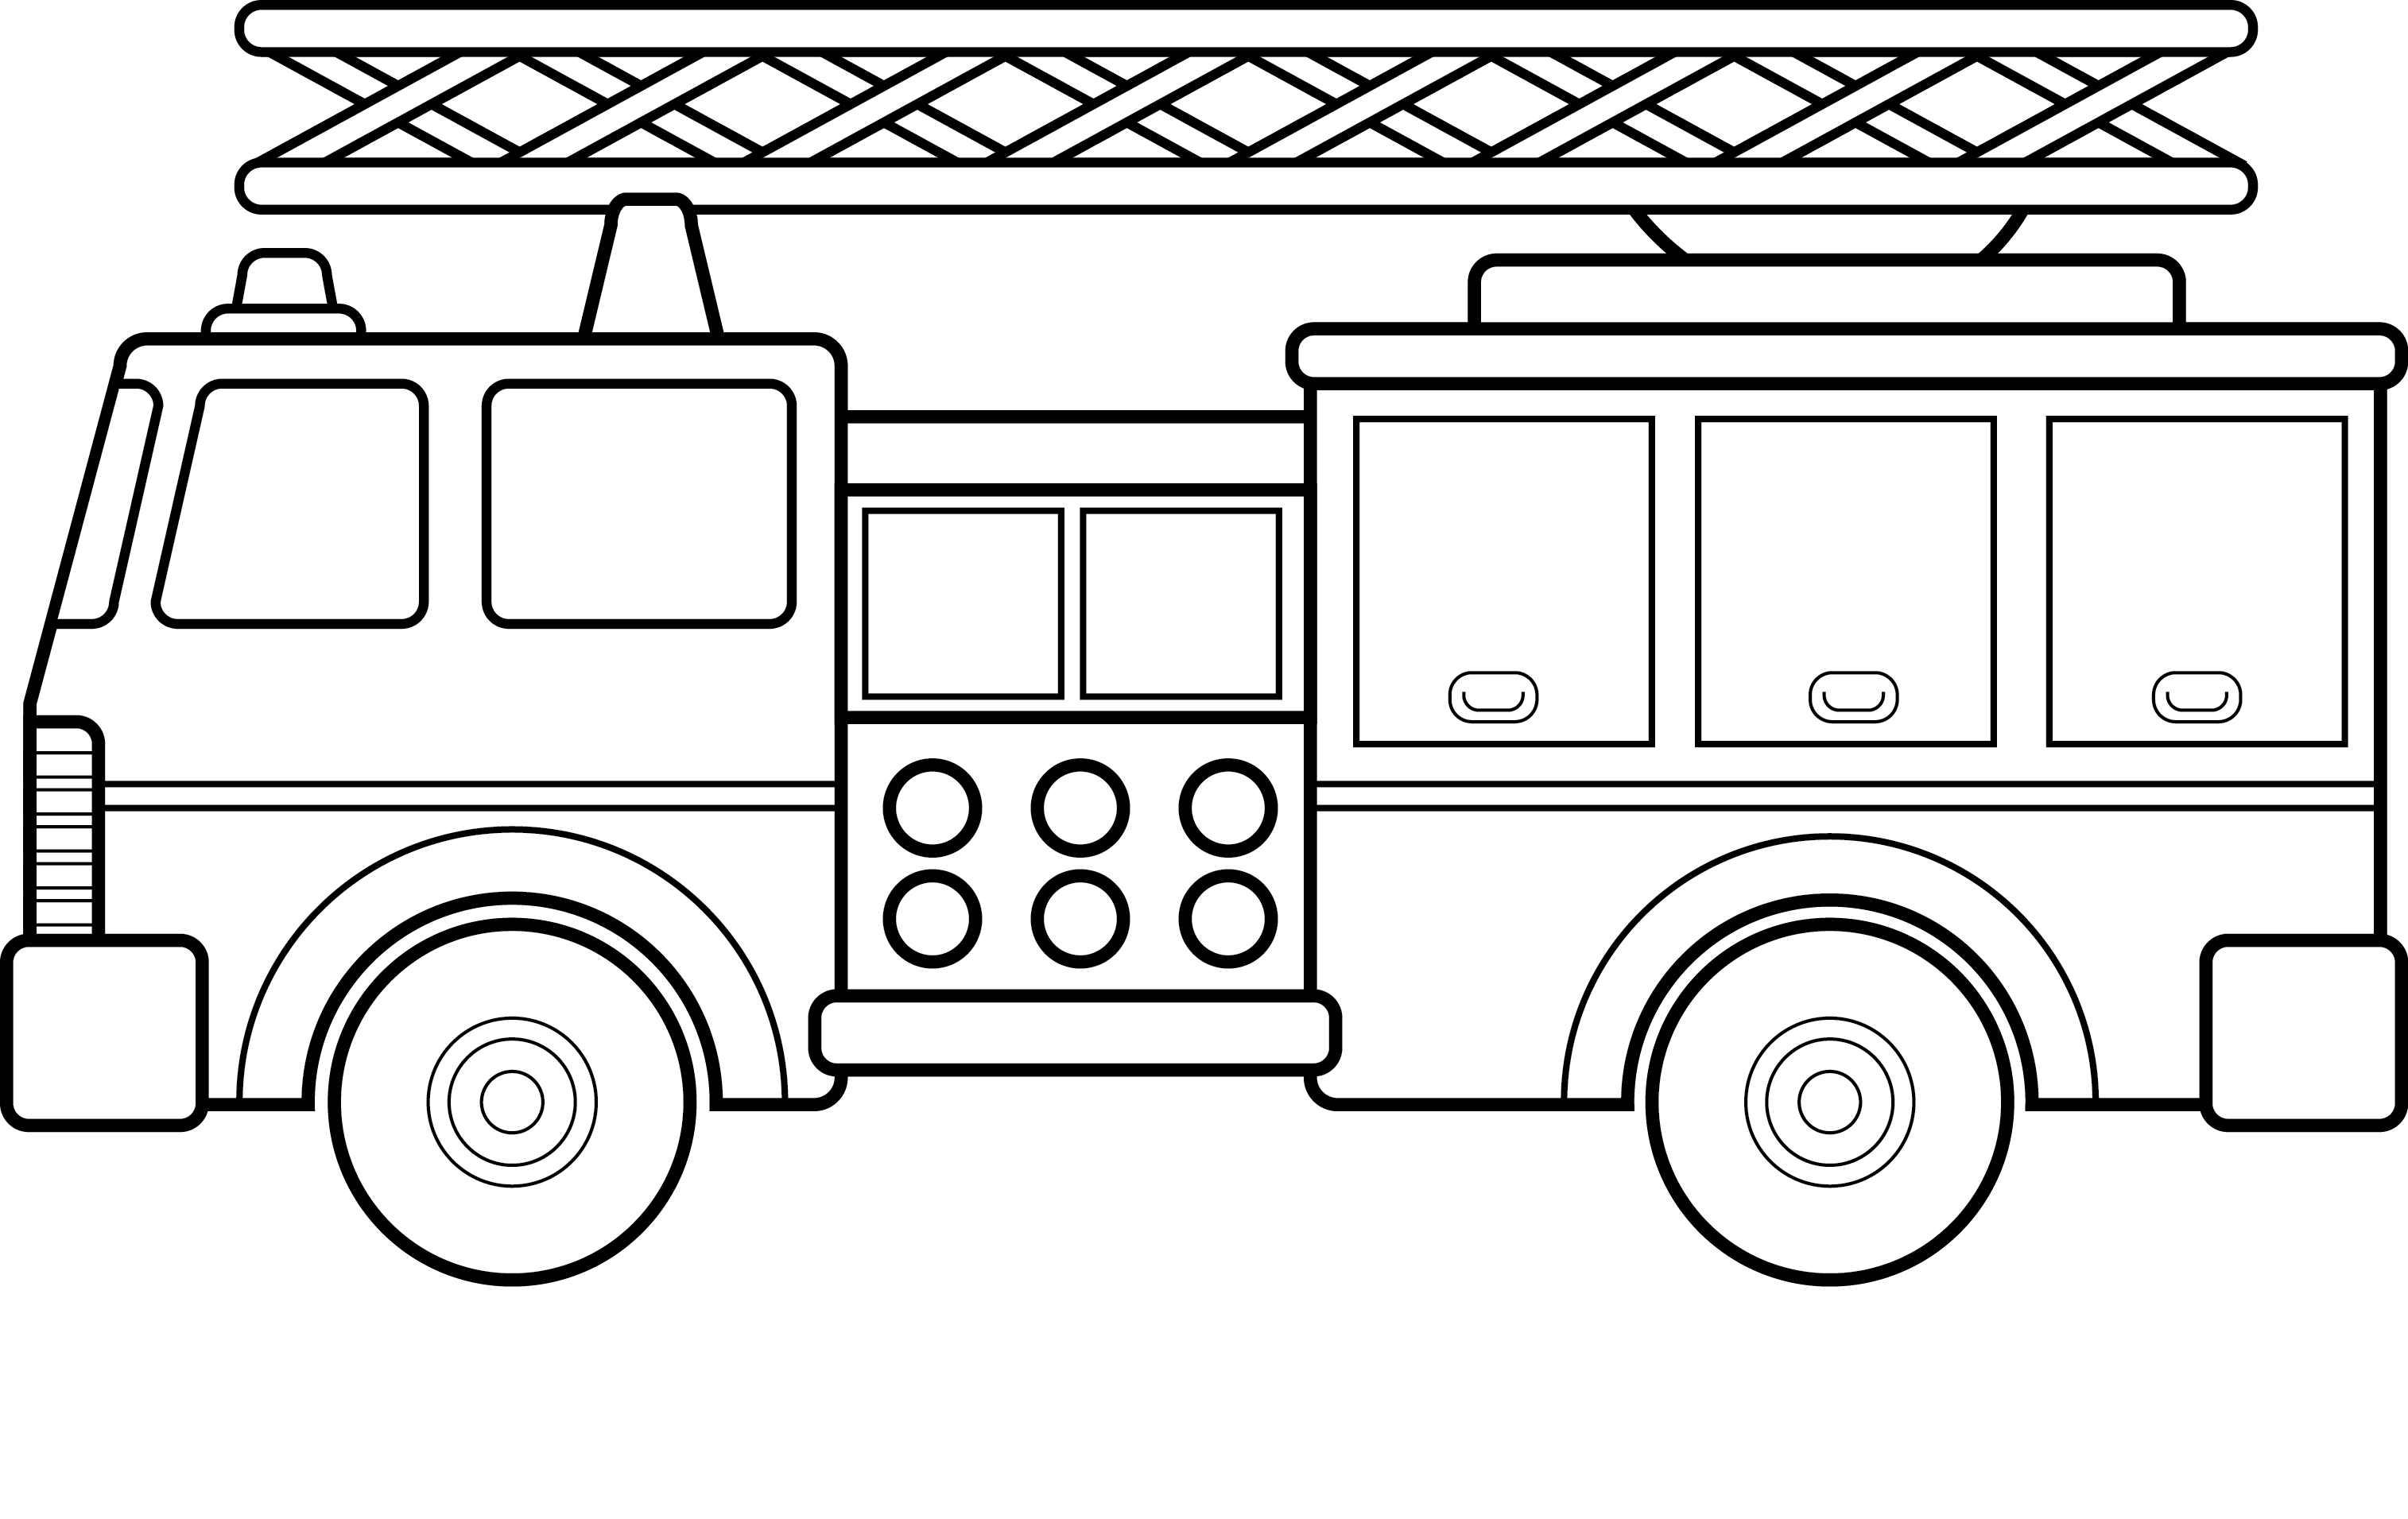 fire truck coloring pages pictures - Simple Car Coloring Pages